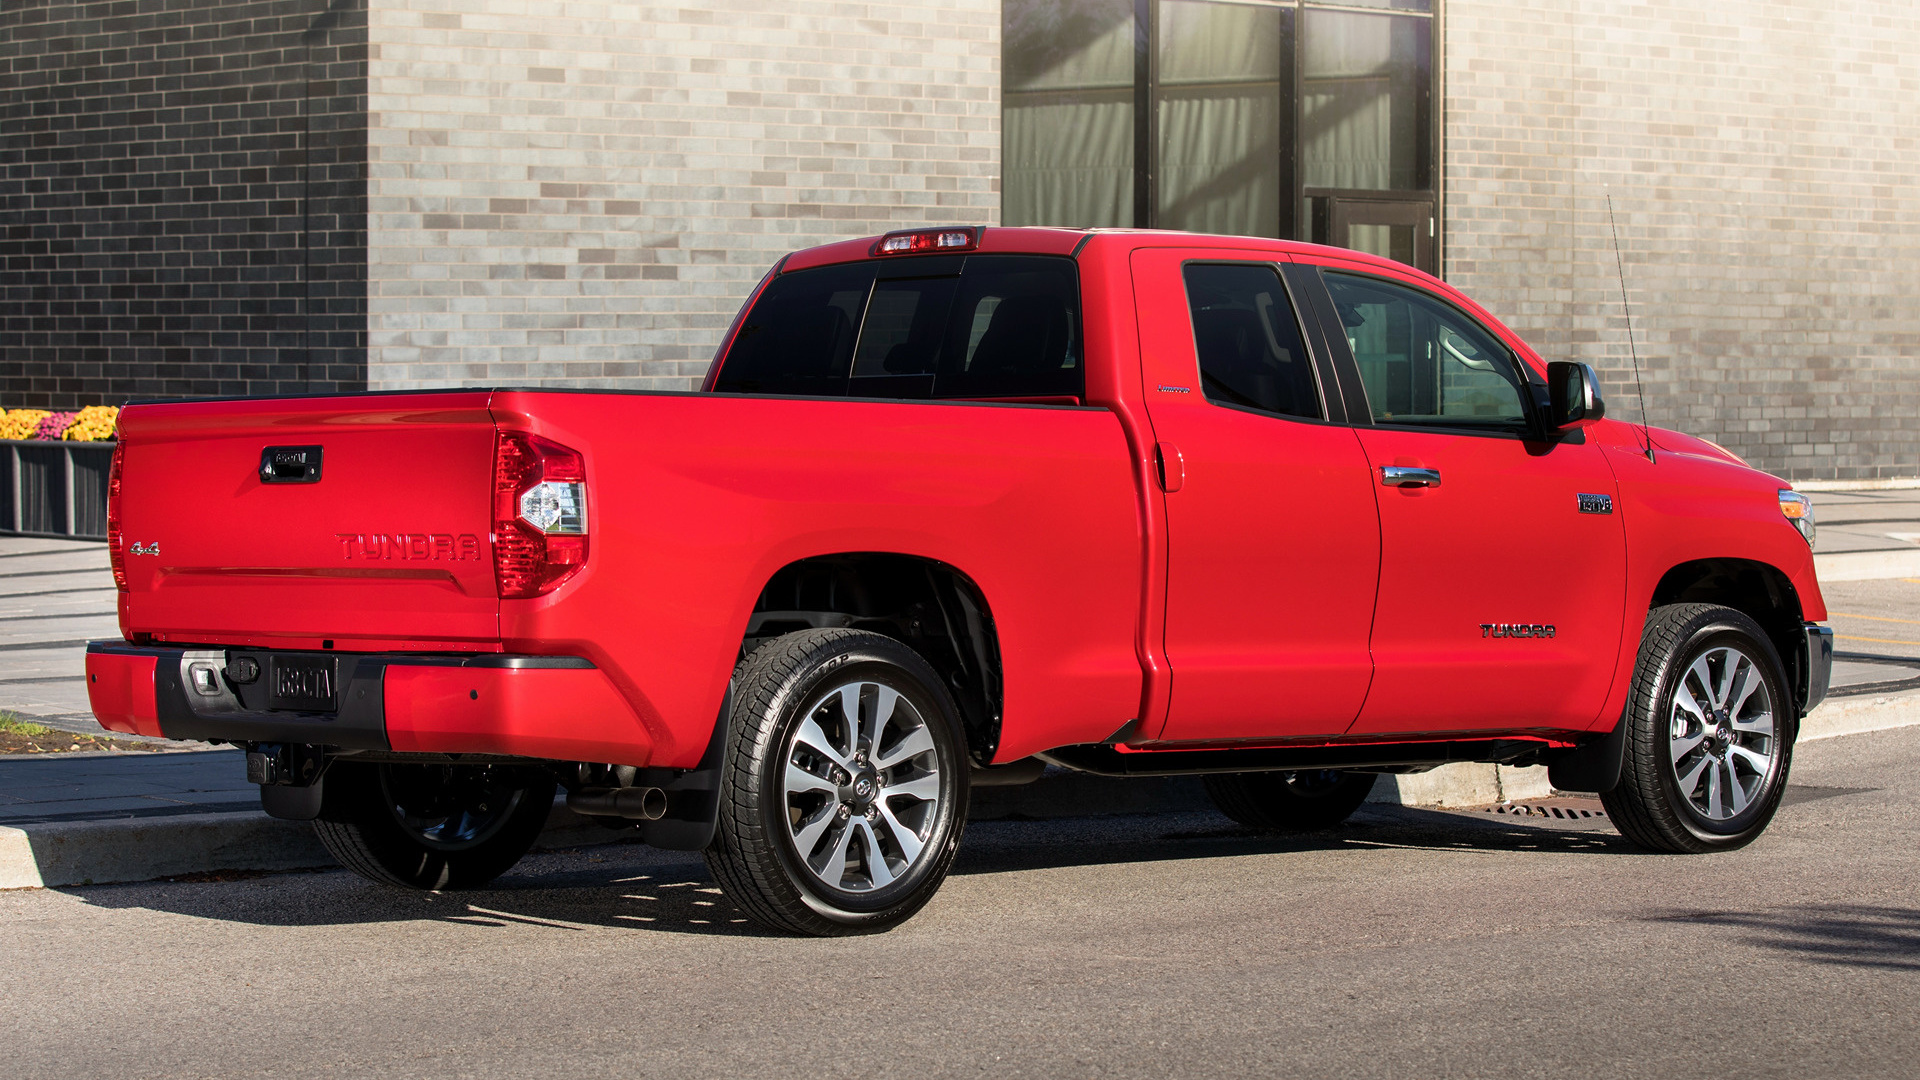 Trd Pro Tundra >> 2018 Toyota Tundra Limited Double Cab - Wallpapers and HD Images | Car Pixel